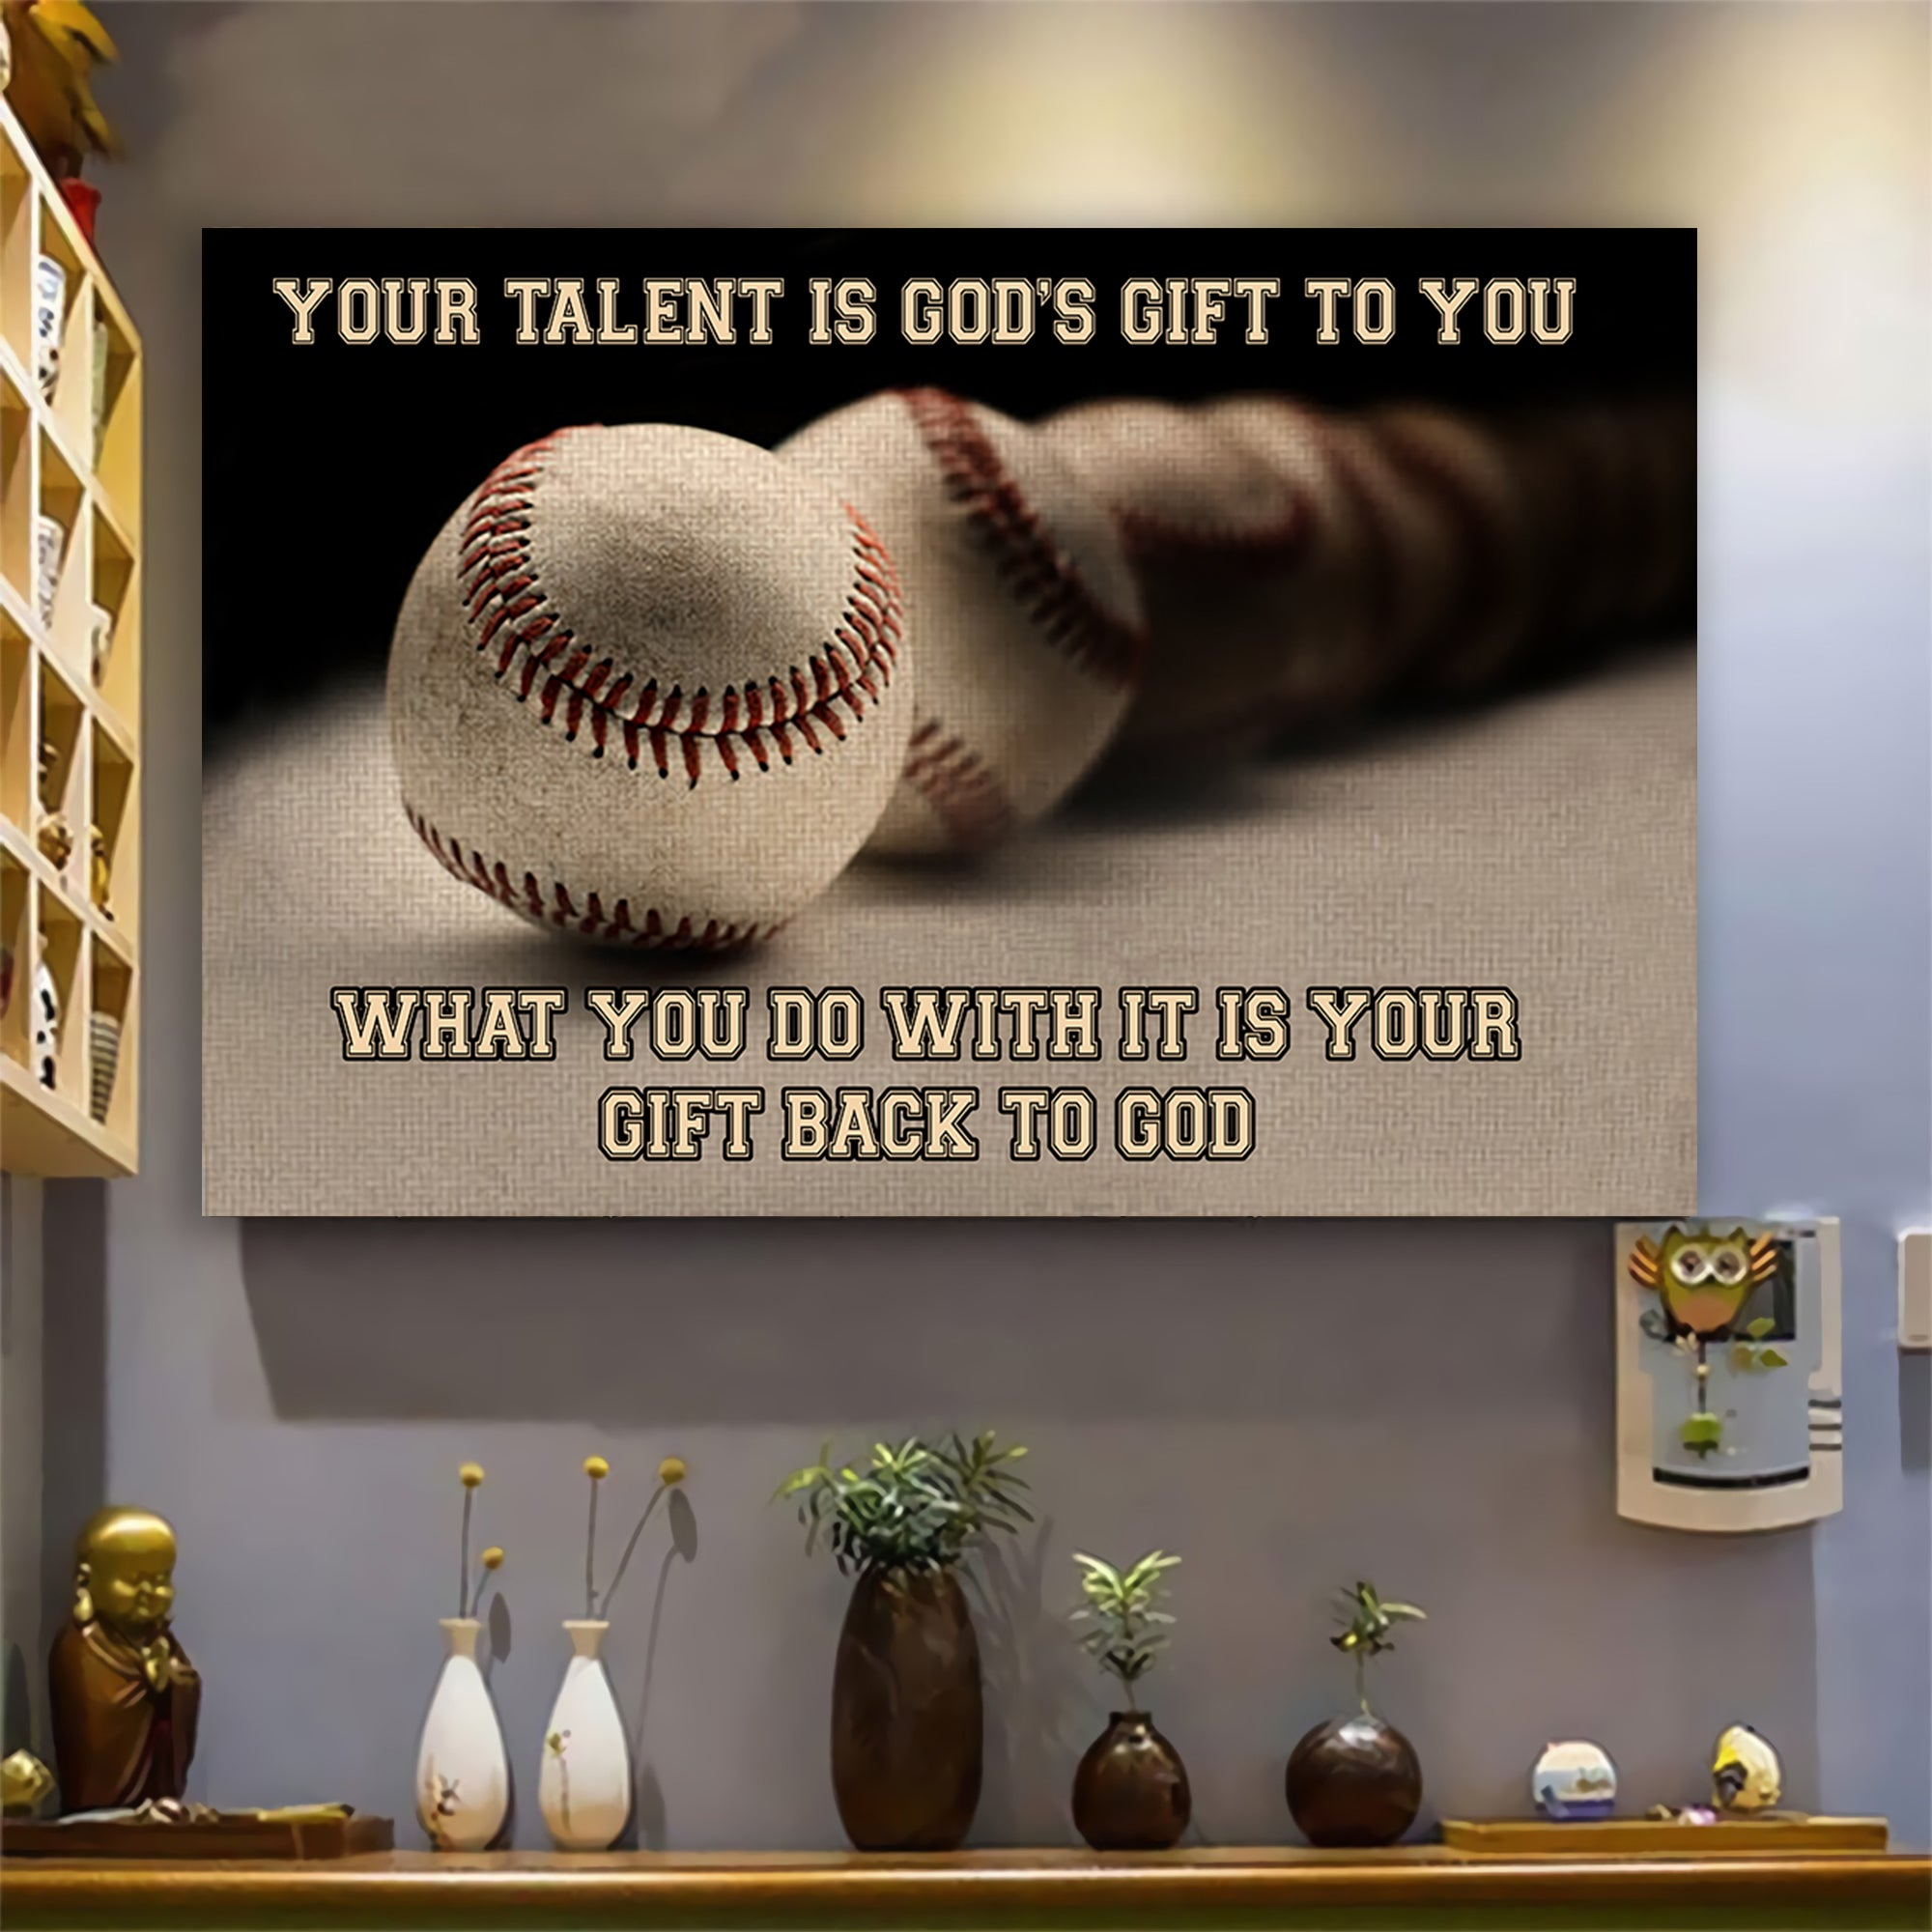 (LP348) Customizable Baseball Poster Canvas - Your talent is god's gift to you- FREE SHIPPING ON ORDERS OVER $75